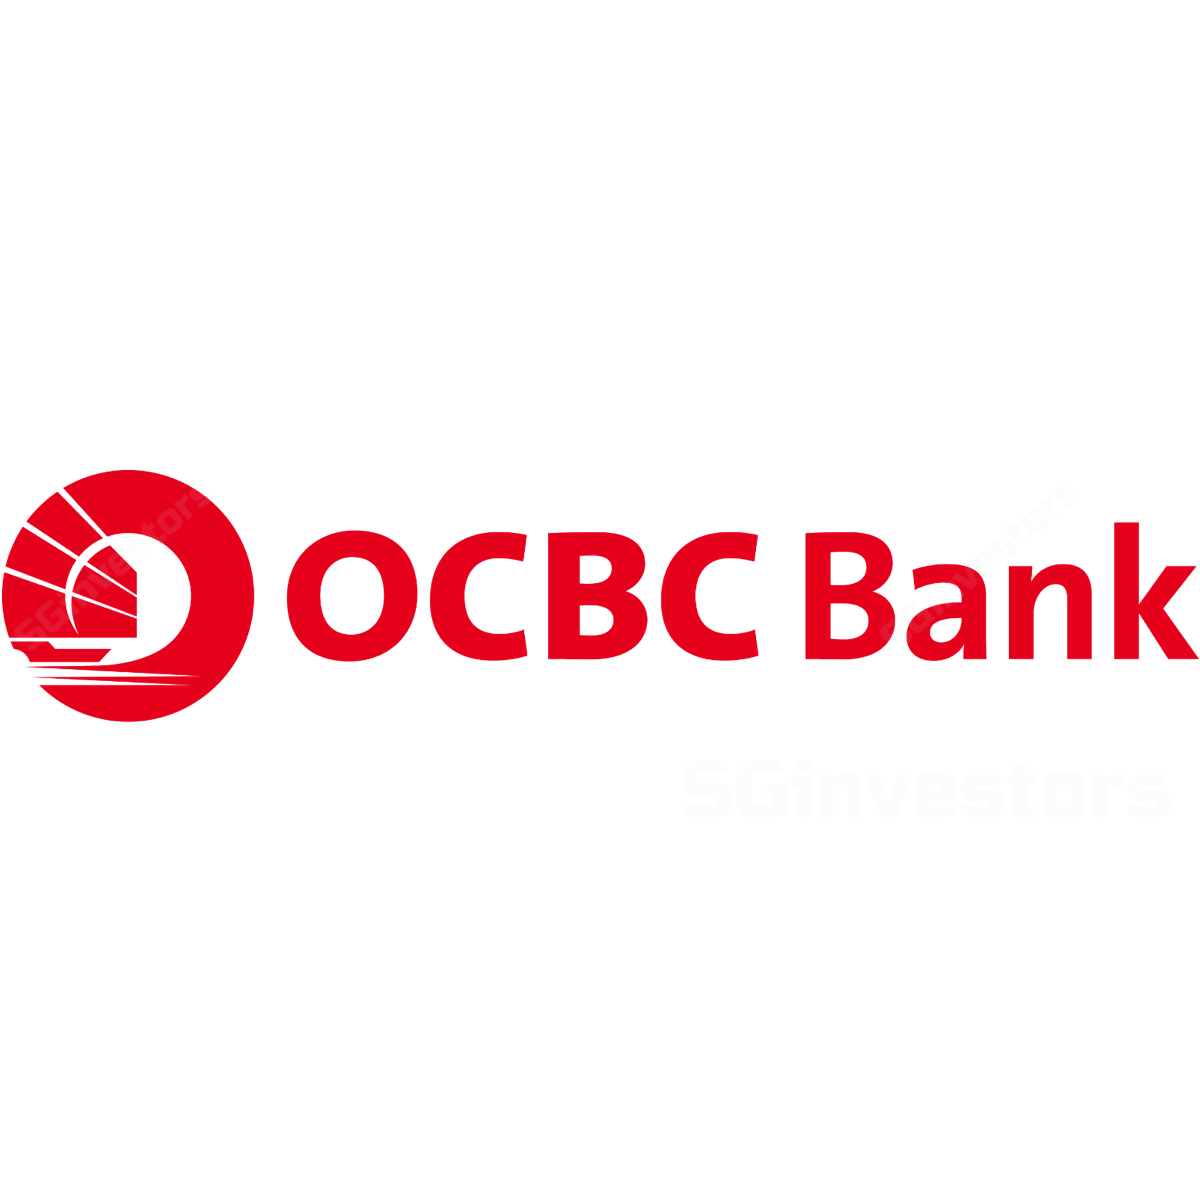 Oversea-Chinese Banking Corp - Phillip Securities 2017-02-16: Tough Operating Environment weighs on Performance